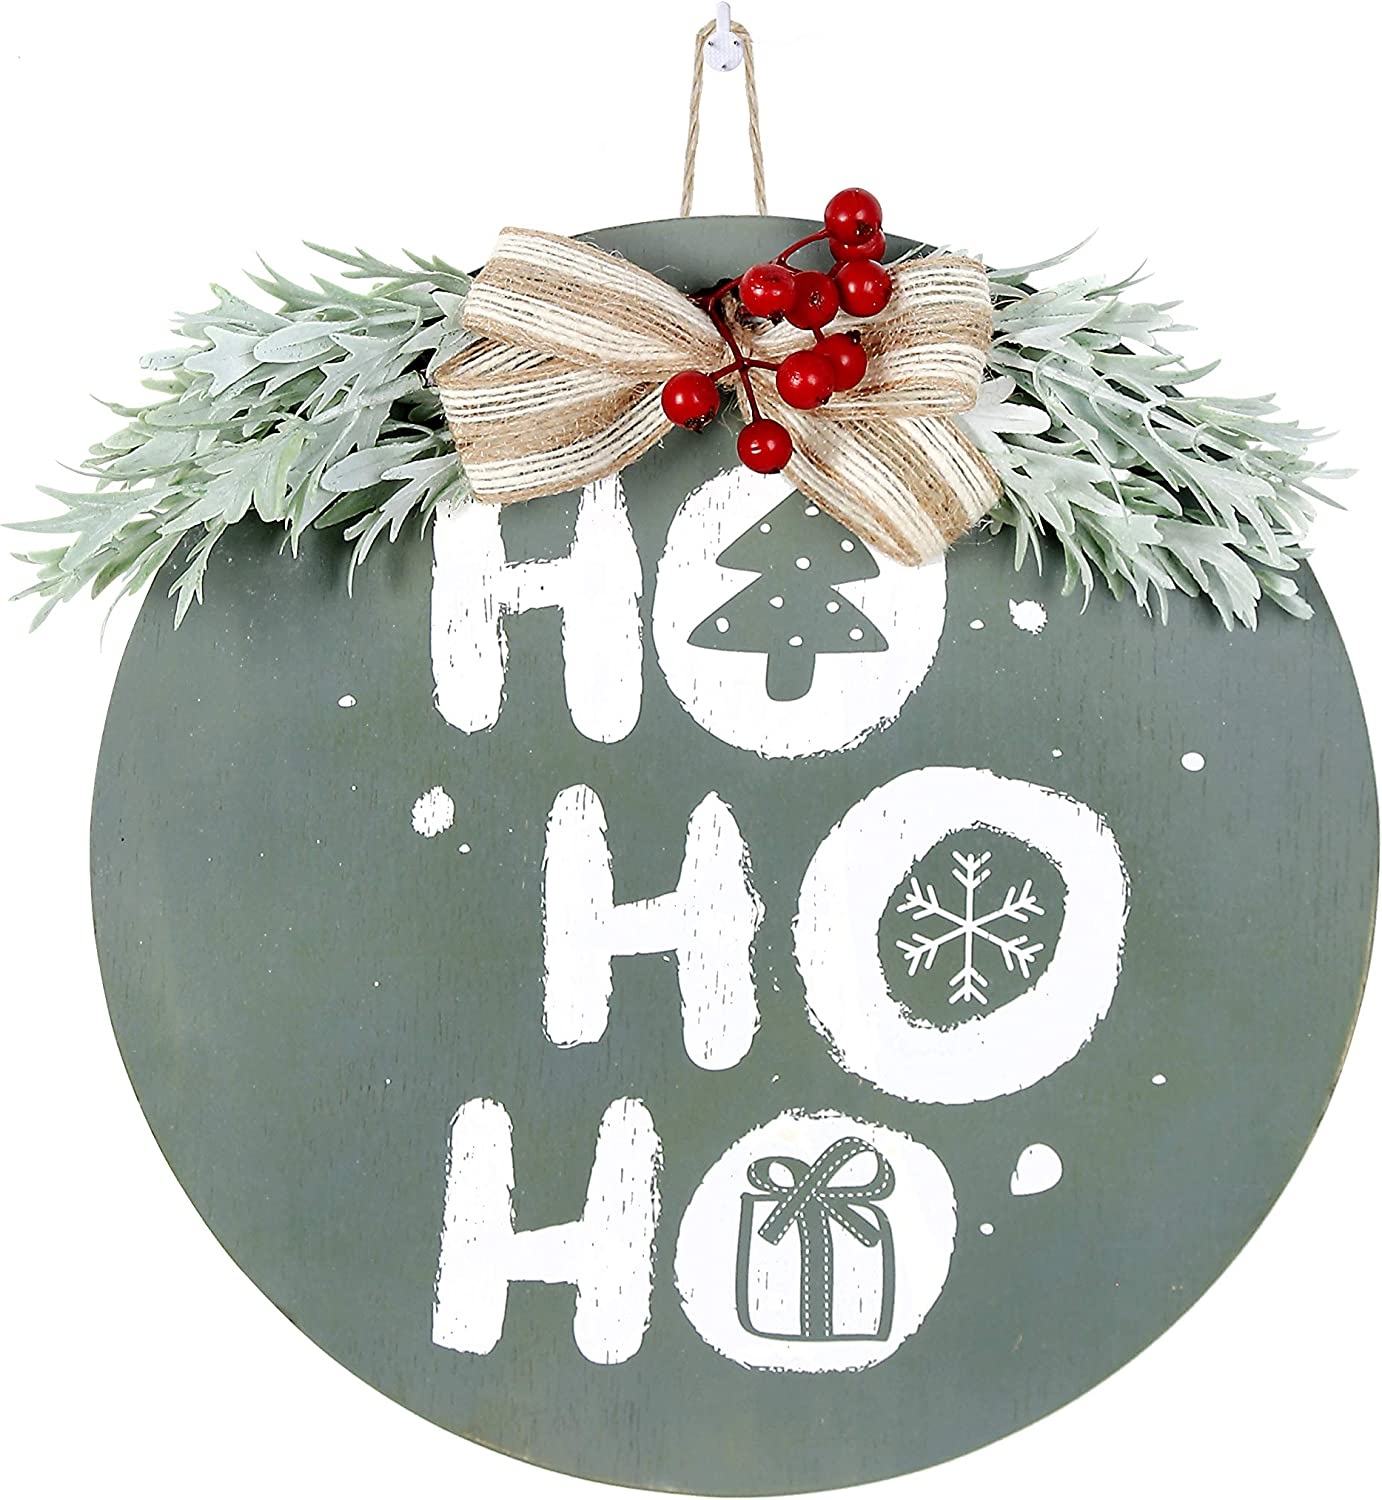 OCIOLI Merry Christmas Decorations Wreath Christmas Hanging Sign Rustic Burlap Wooden Holiday Decor Wooden Door Wall Hanging Ornaments for Christmas Front Door Wall Farmhouse Indoor Outdoor Decorations